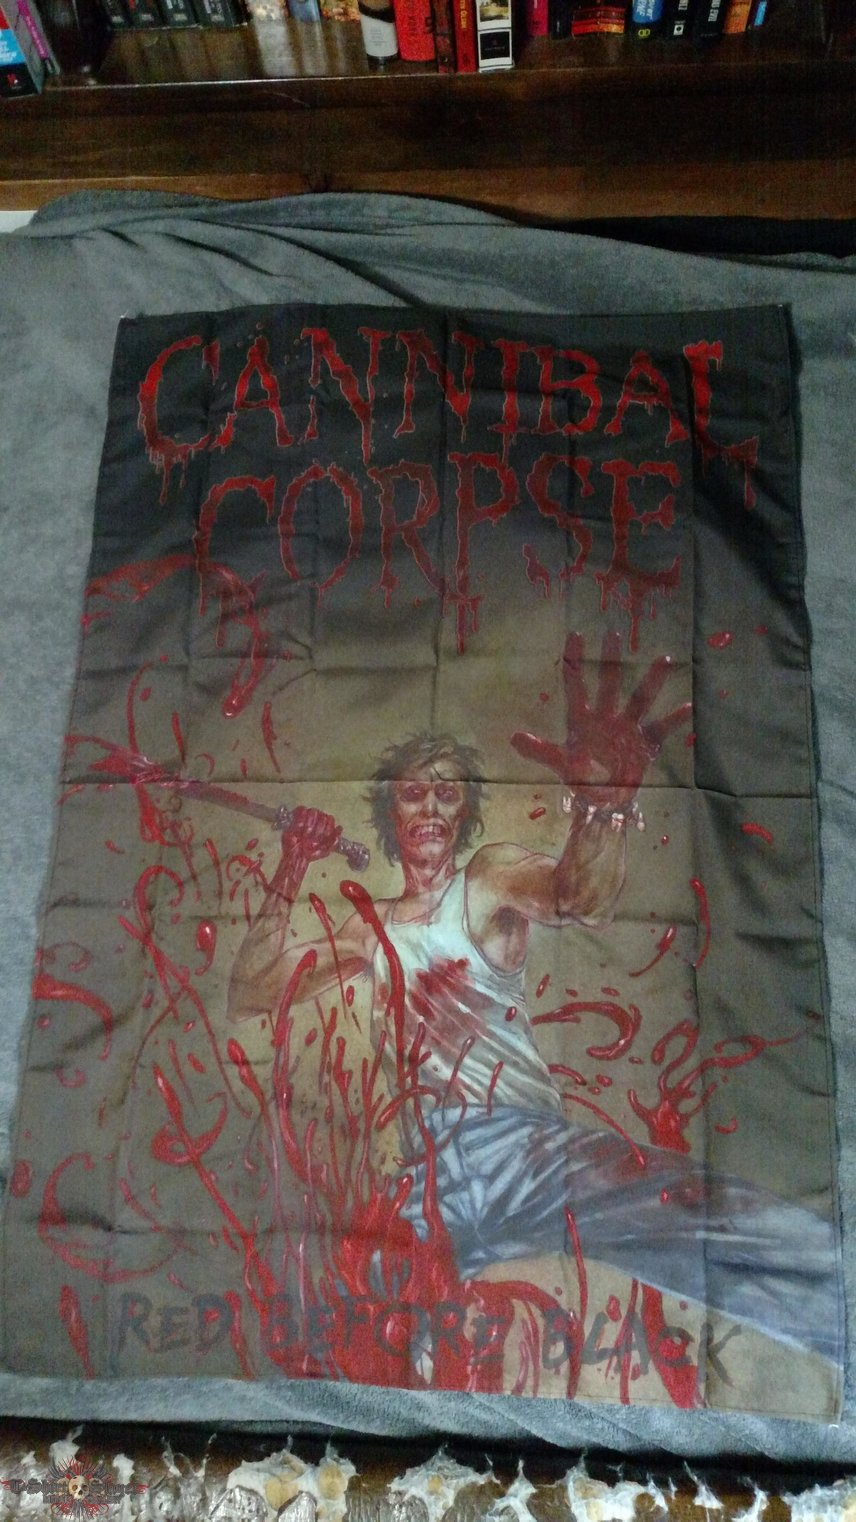 Cannibal Corpse - Red Before Black [Fabric Poster]